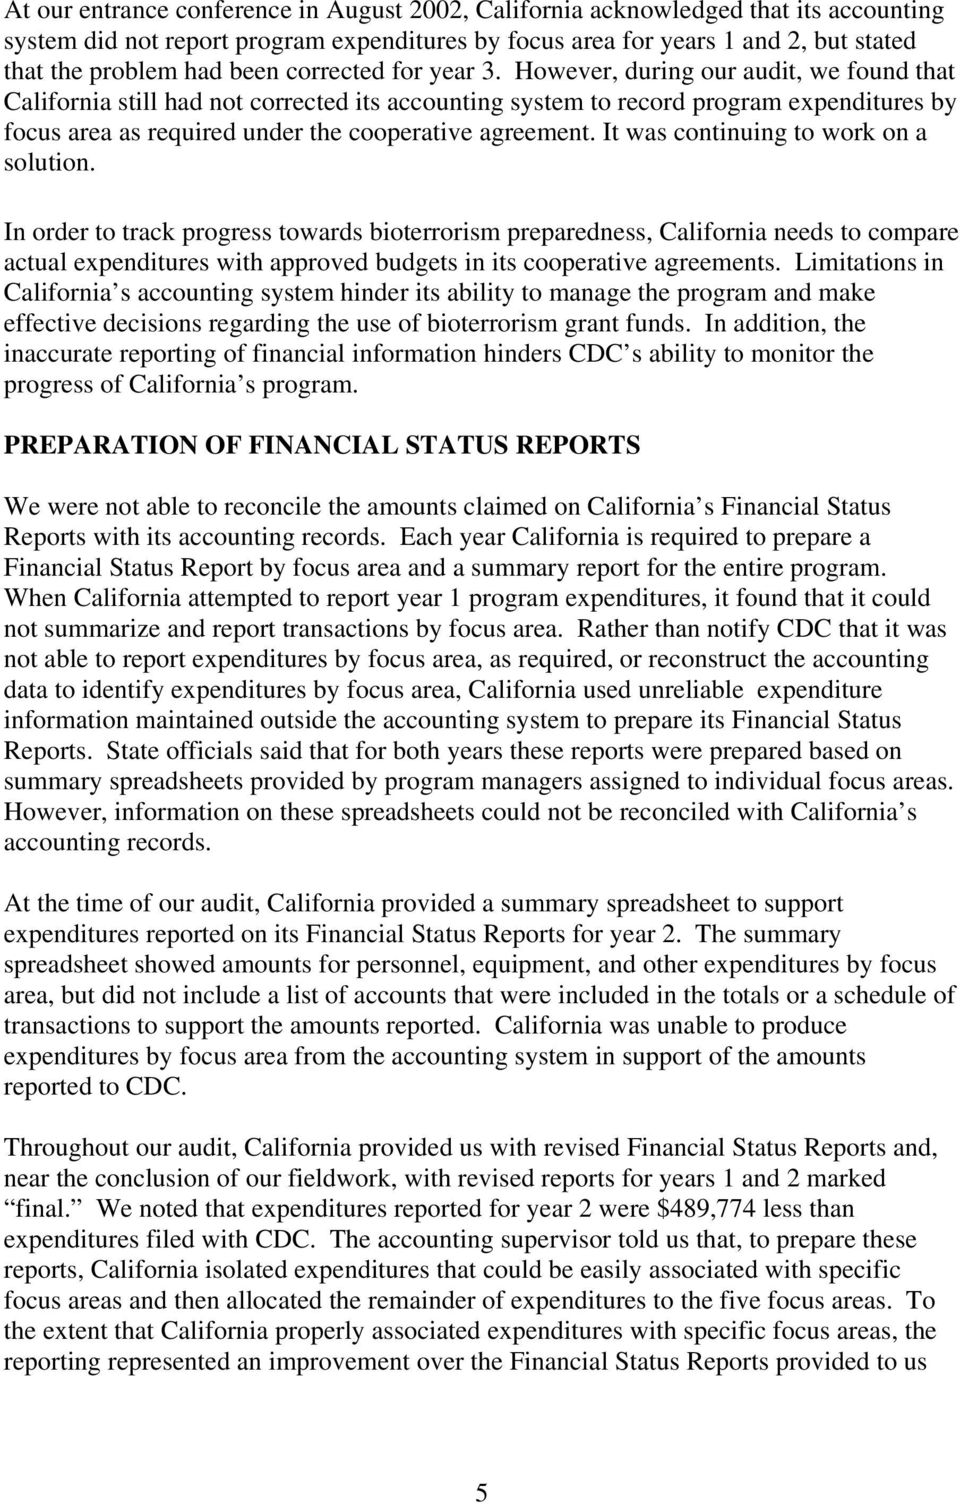 However, during our audit, we found that California still had not corrected its accounting system to record program expenditures by focus area as required under the cooperative agreement.